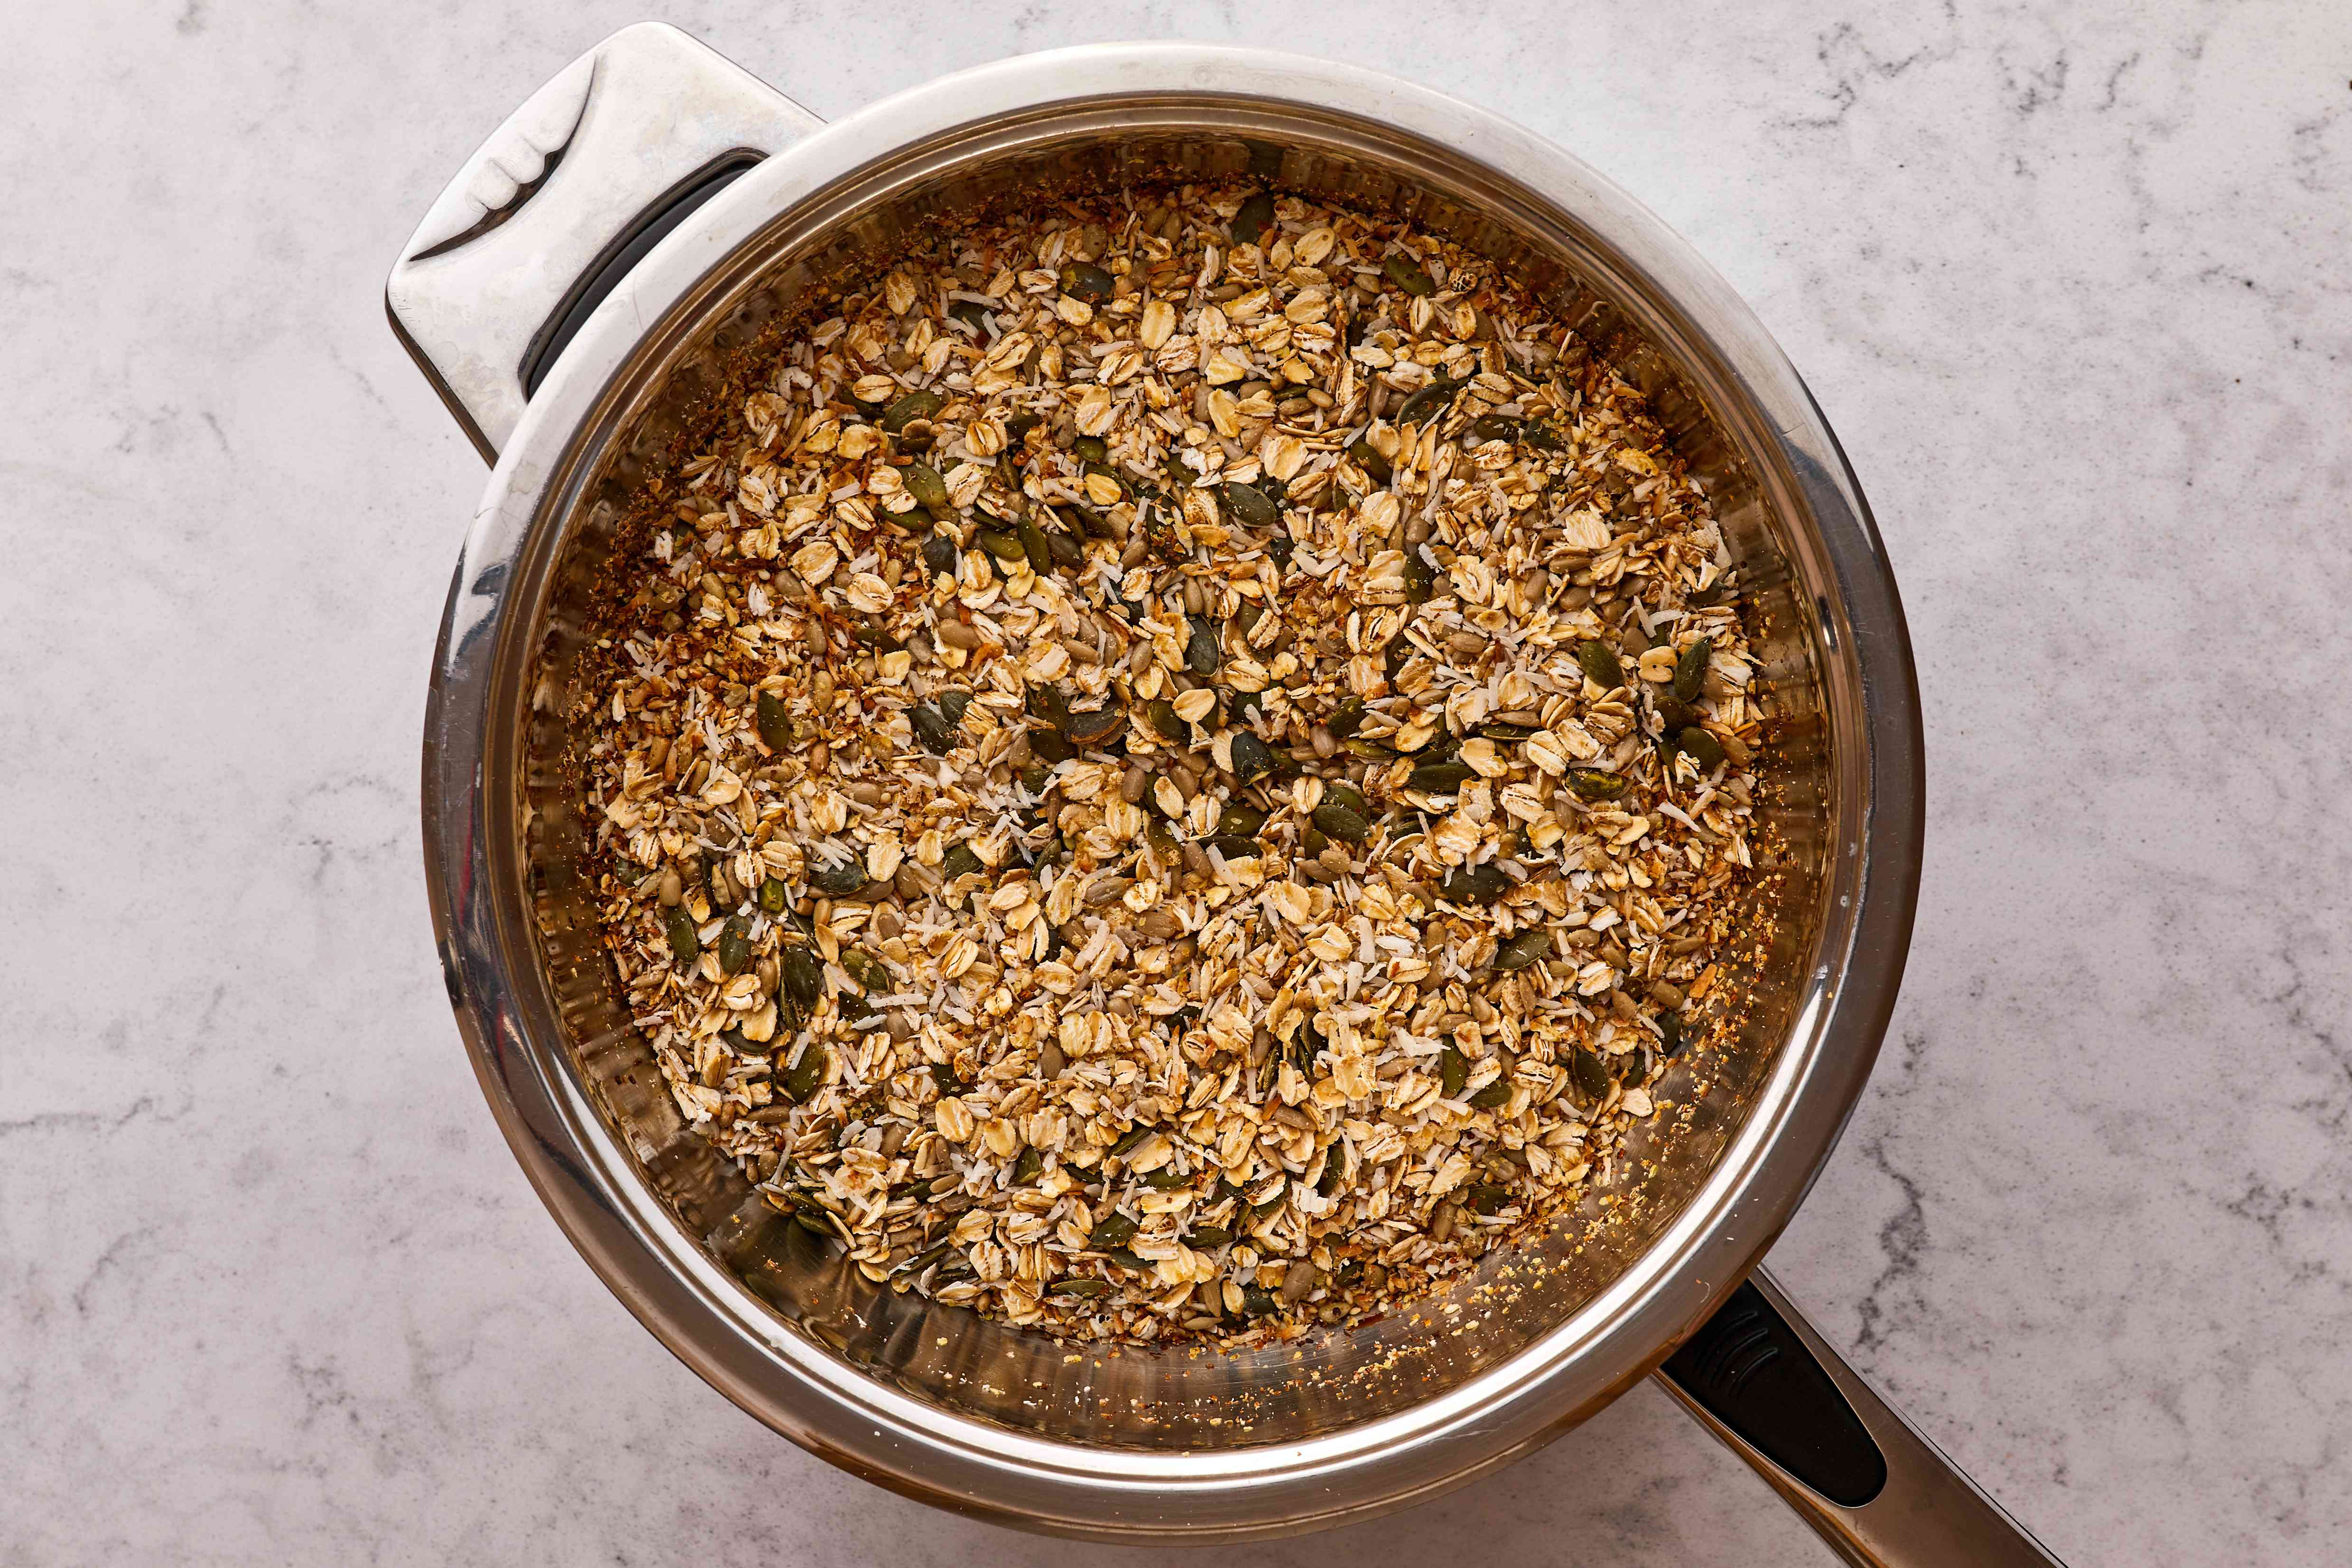 rolled oats, unsweetened dried coconut, wheat germ, sesame seeds, sunflower seeds, and pumpkin seeds in a pot